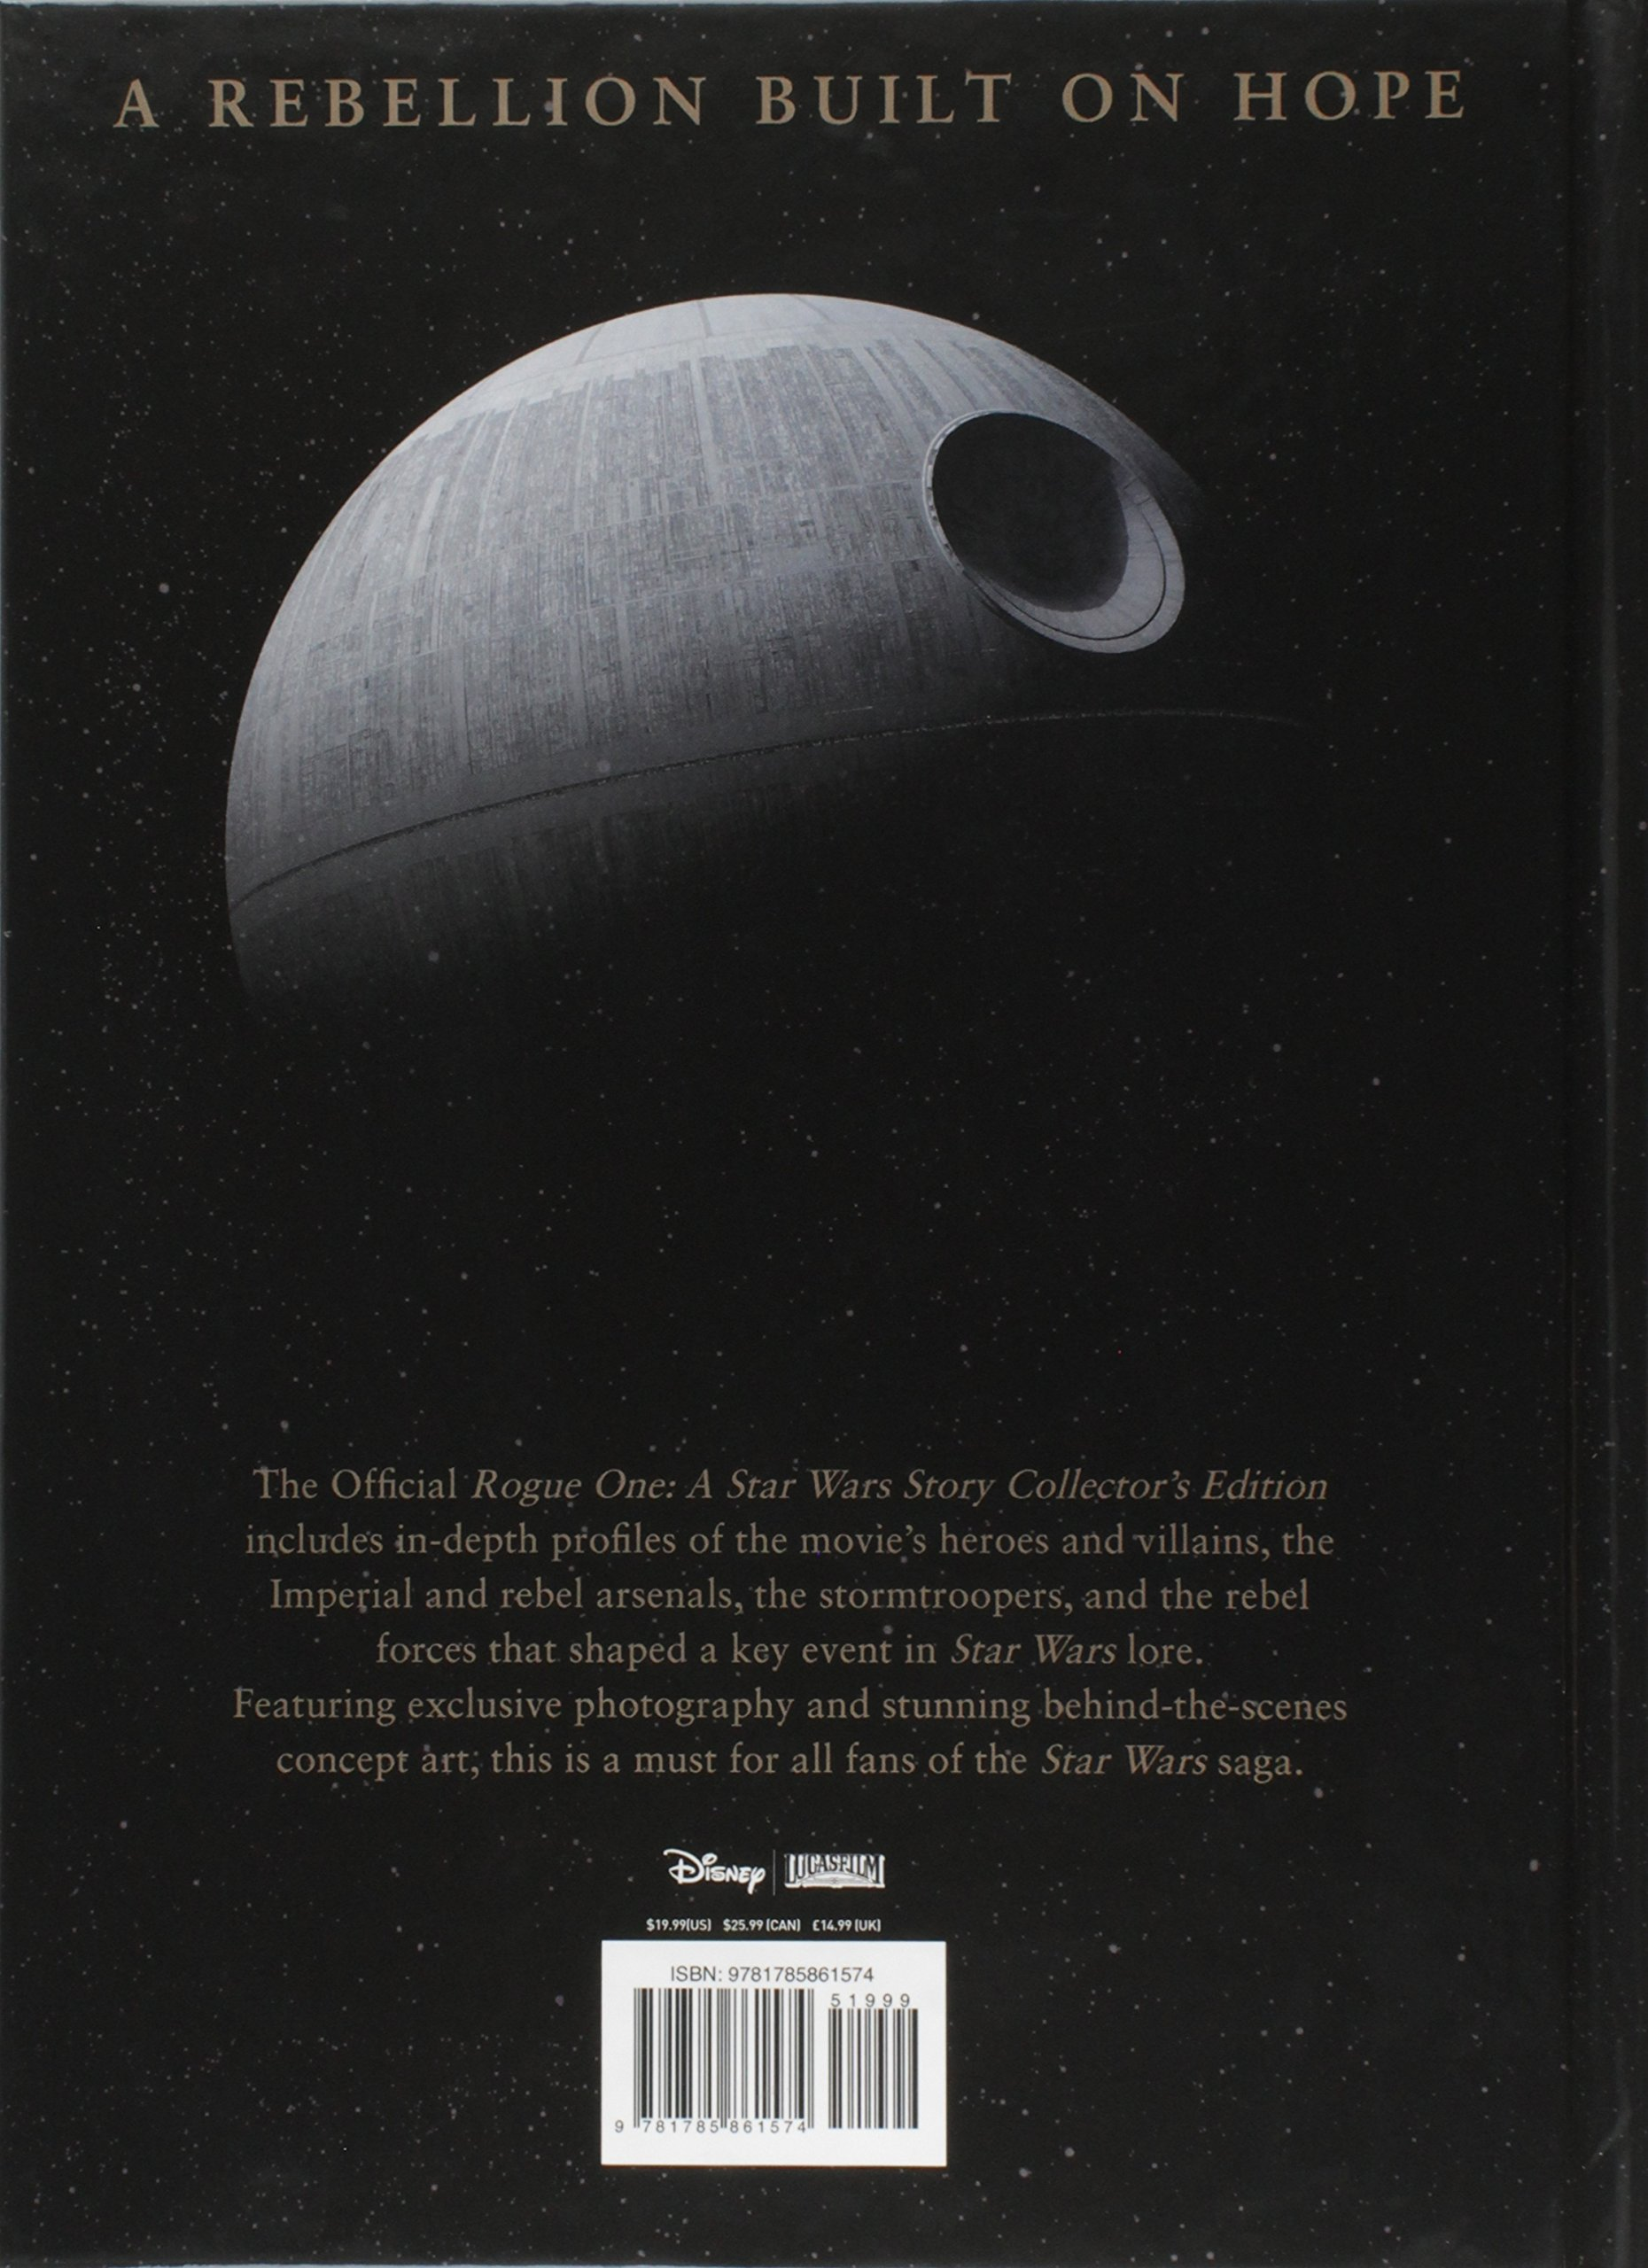 star wars rogue one a star wars story the official collector s edition titan 9781785861574 amazon com books star wars rogue one a star wars story